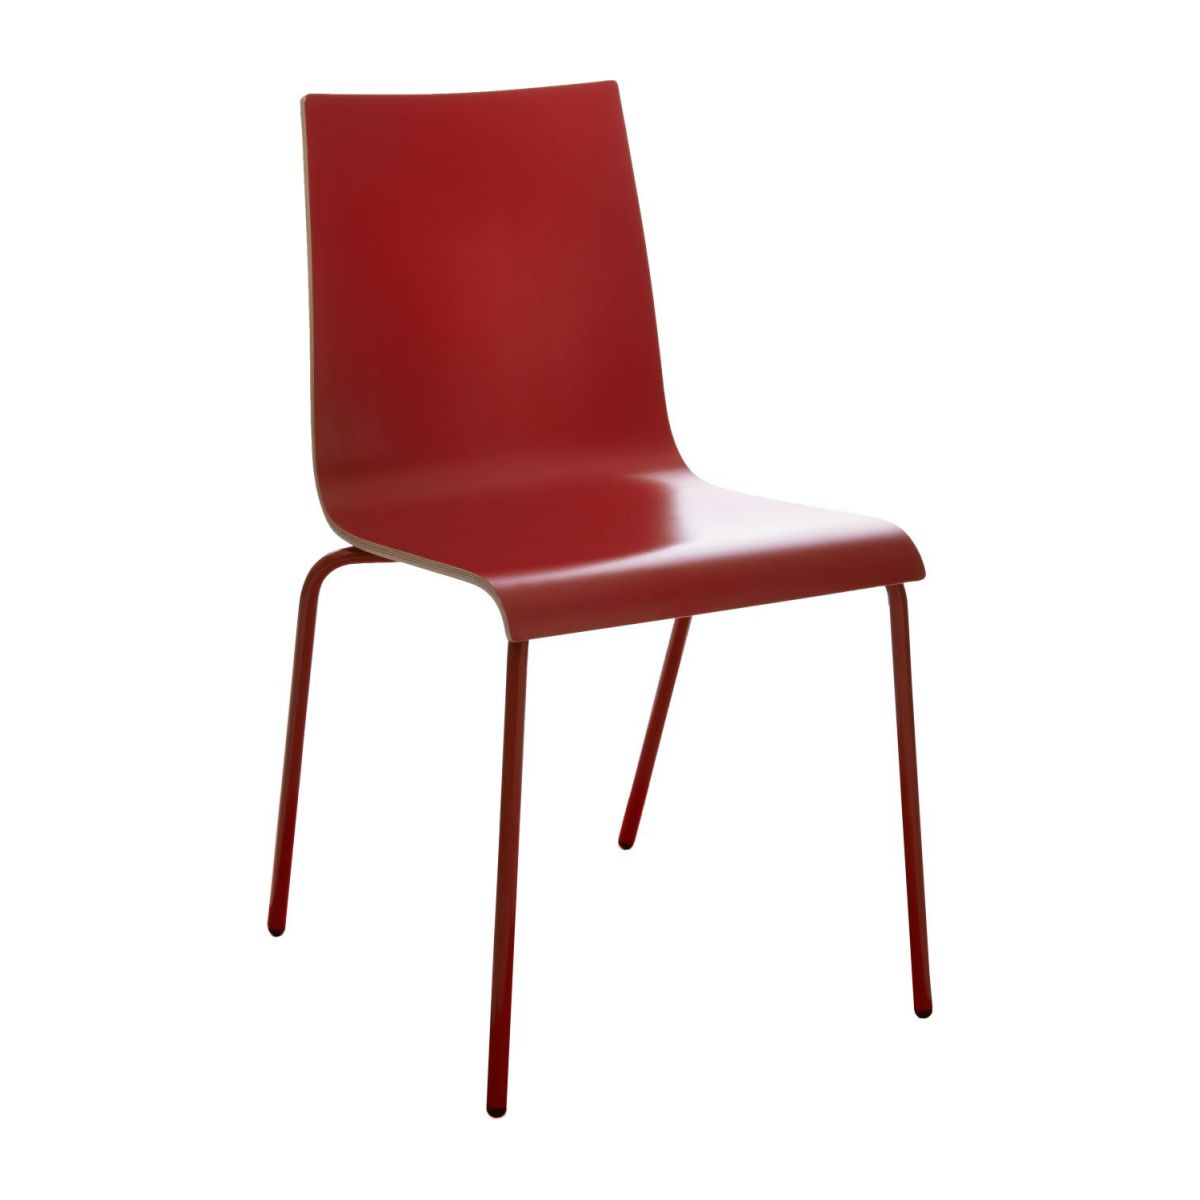 callum chaises de salle manger rouge bois habitat. Black Bedroom Furniture Sets. Home Design Ideas